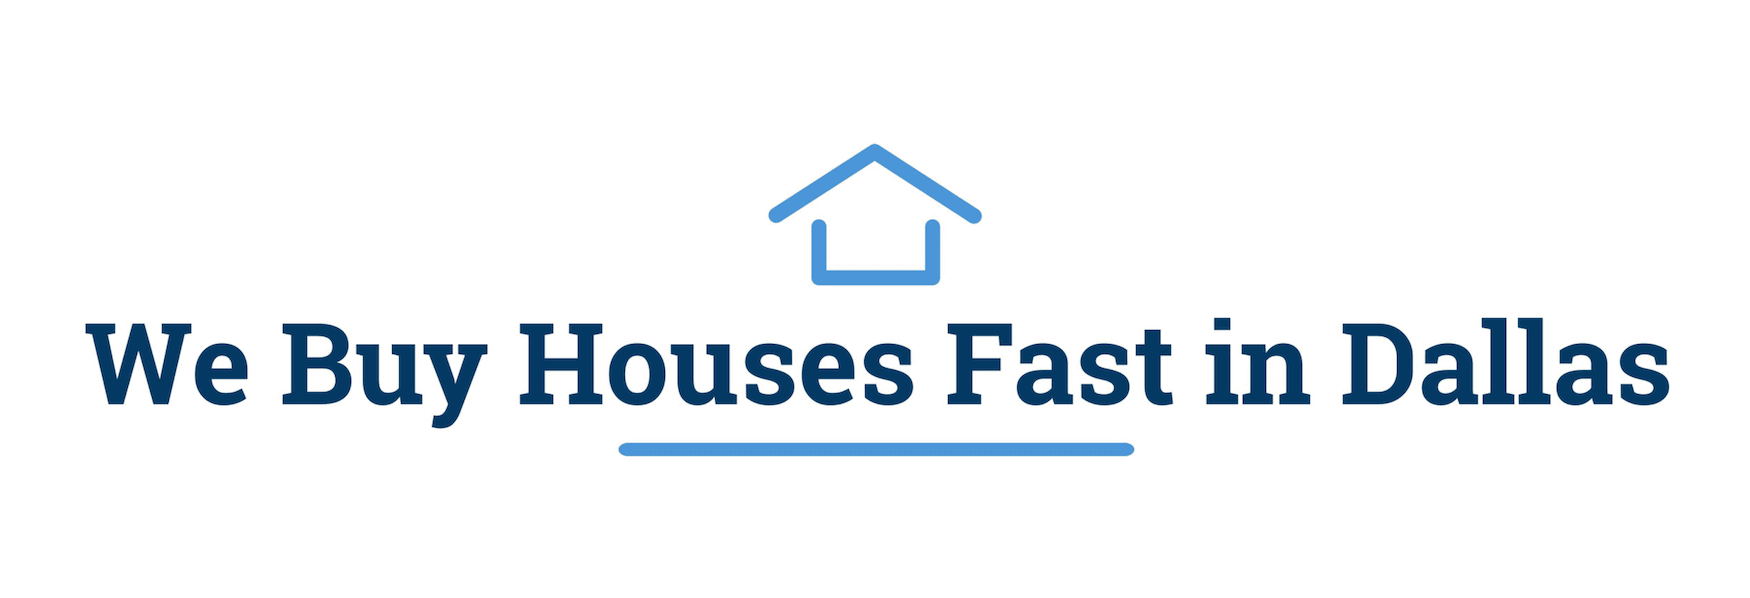 We Buy Houses Fast in Dallas logo